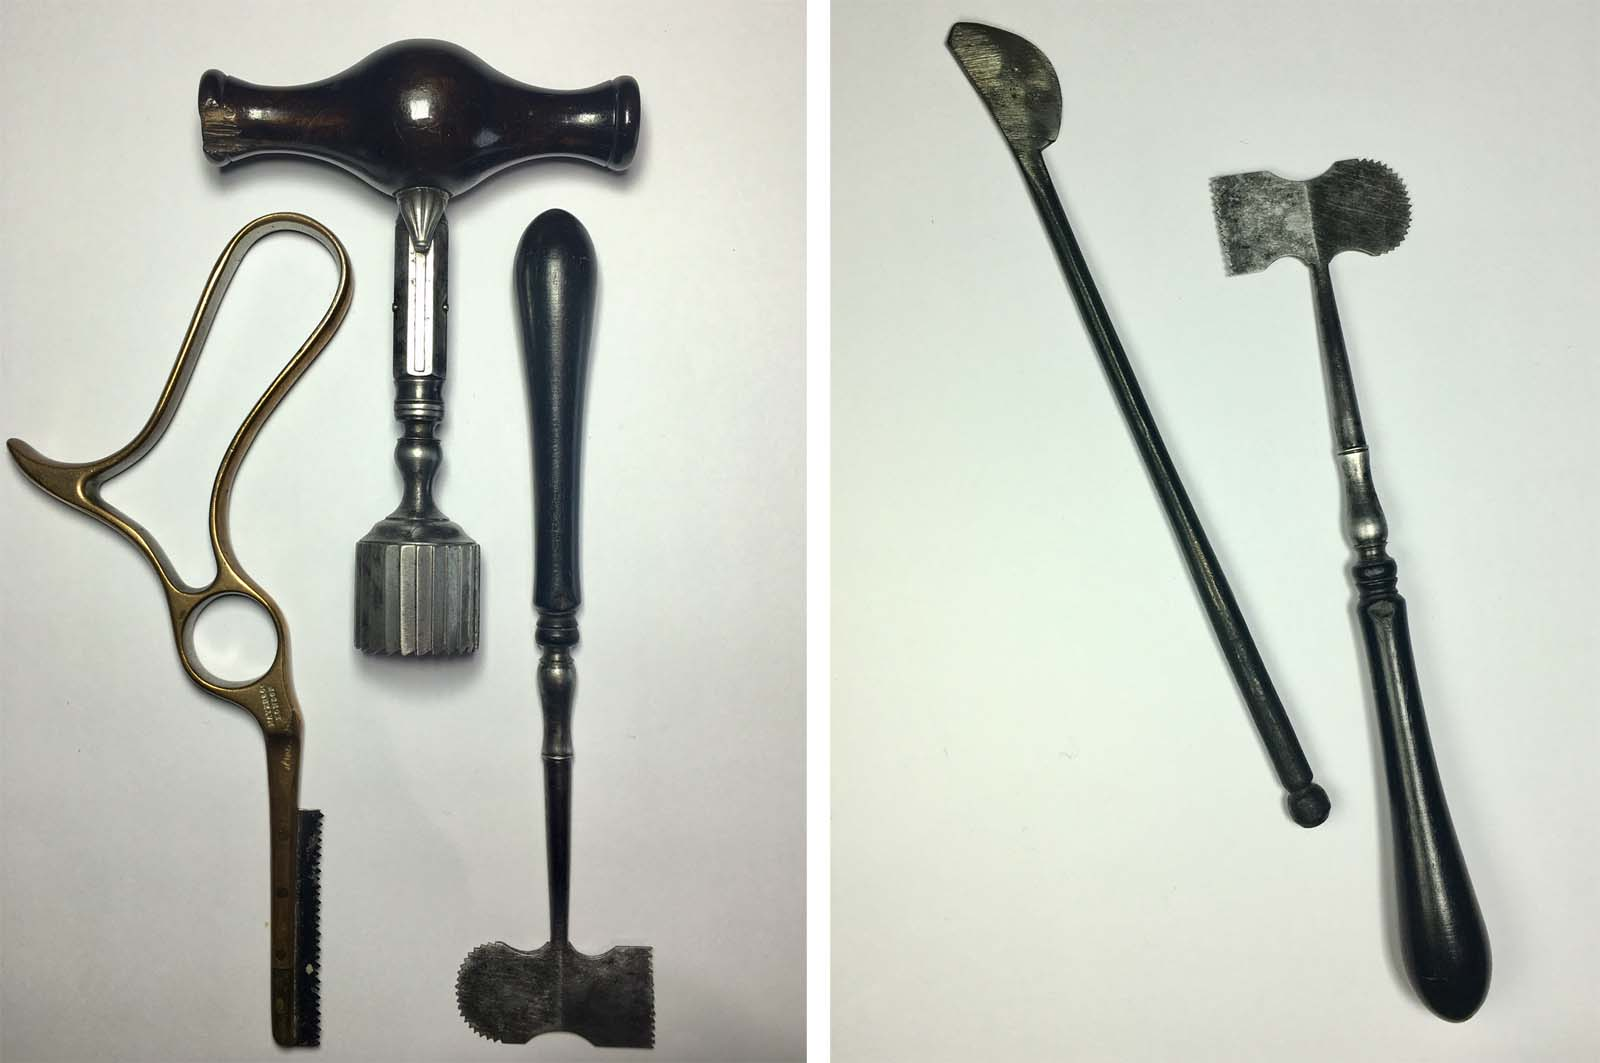 a side by side photo of various surgical implements and trepanning devices